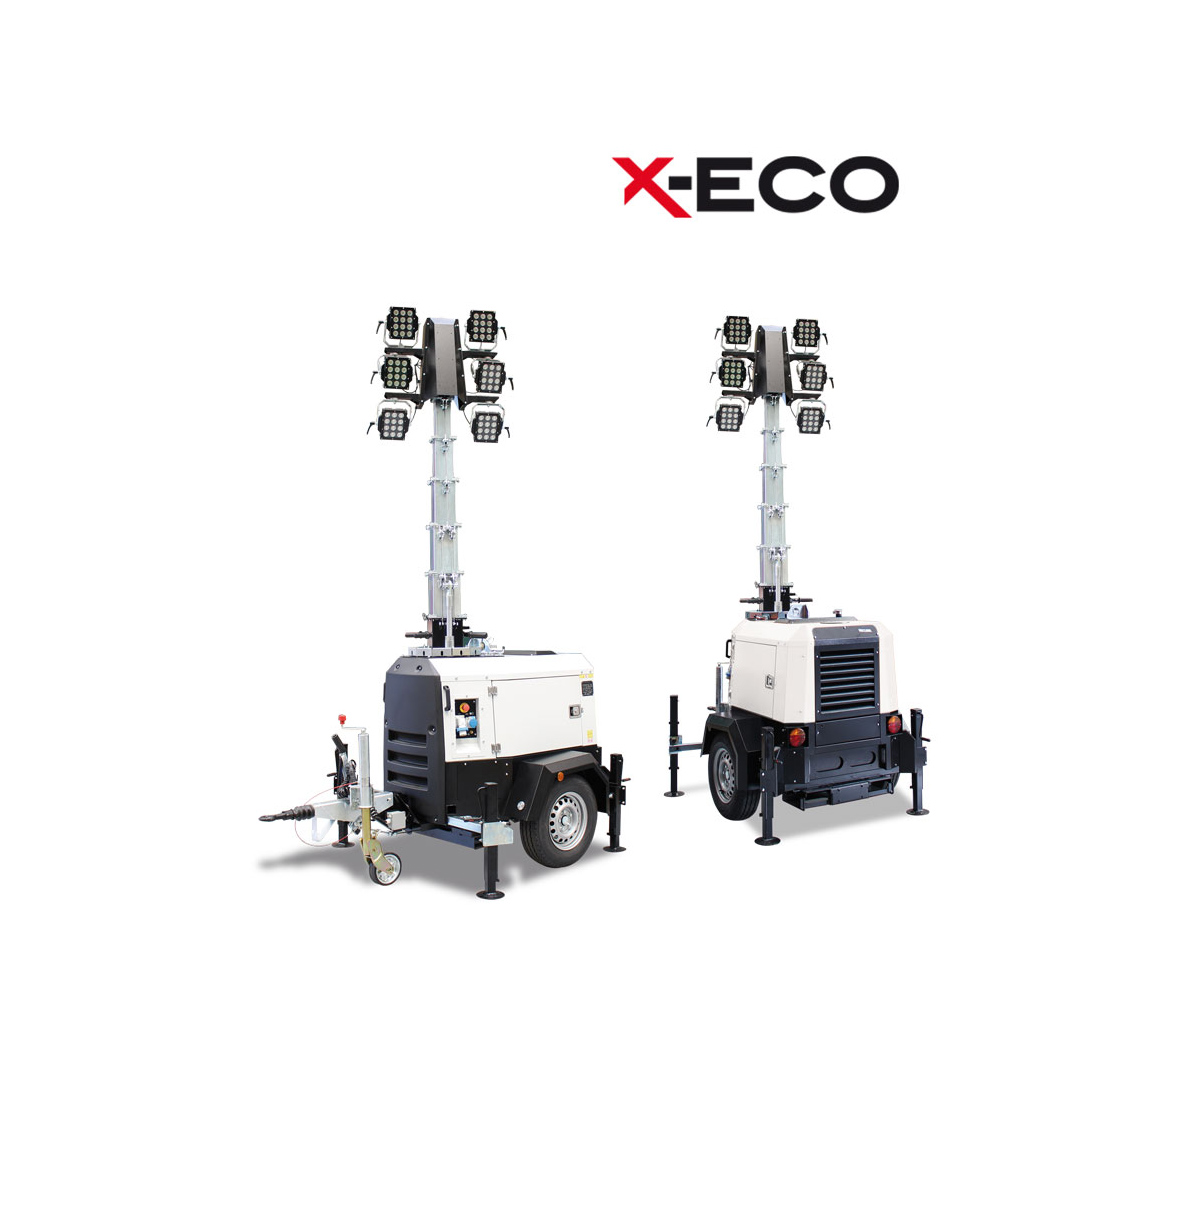 trime-x-eco-lighting-tower-hpg